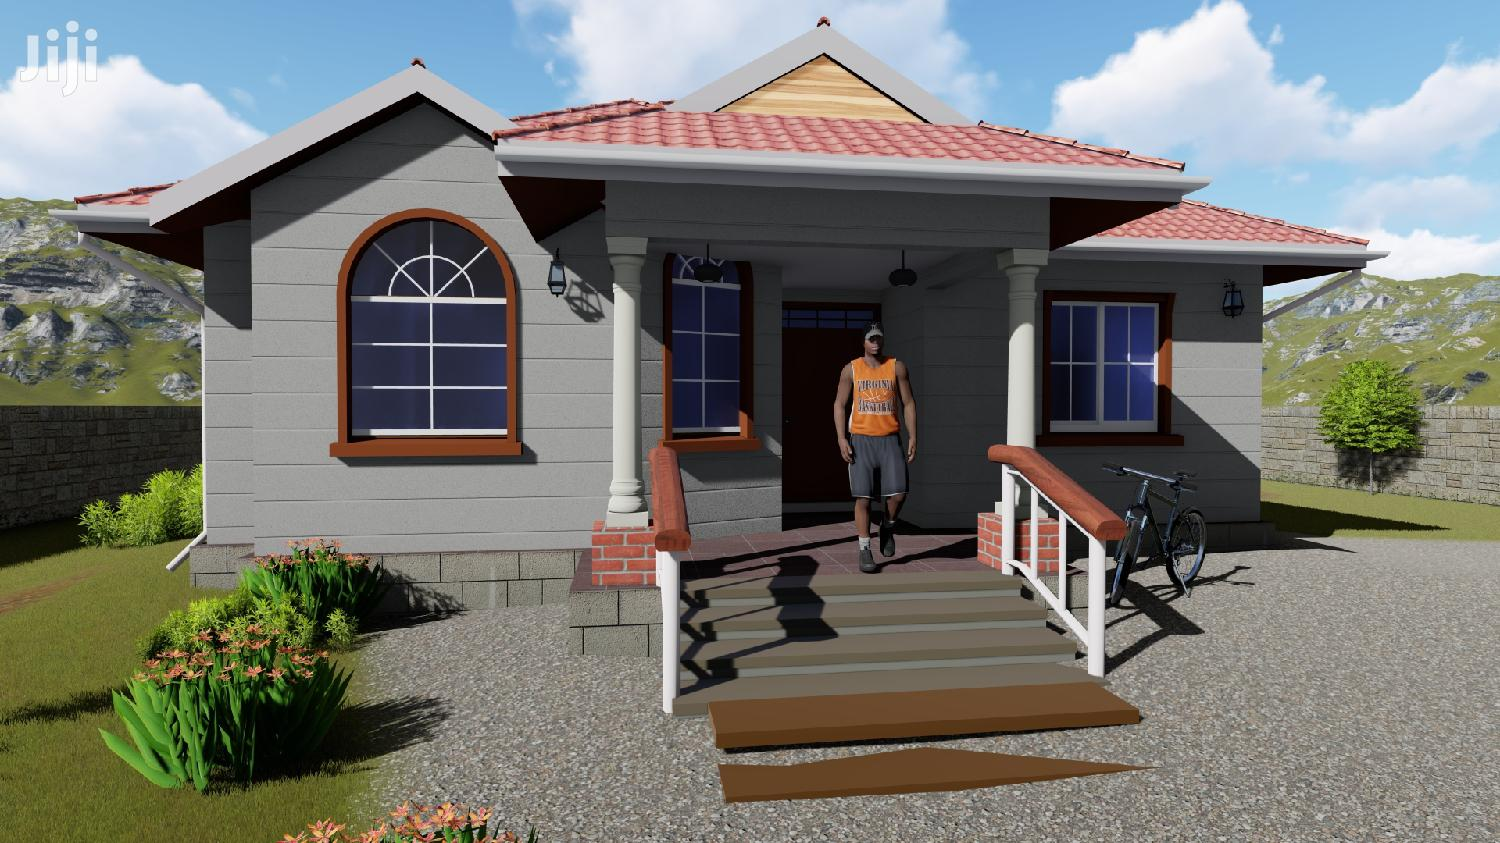 2 Bedrooms House Plan